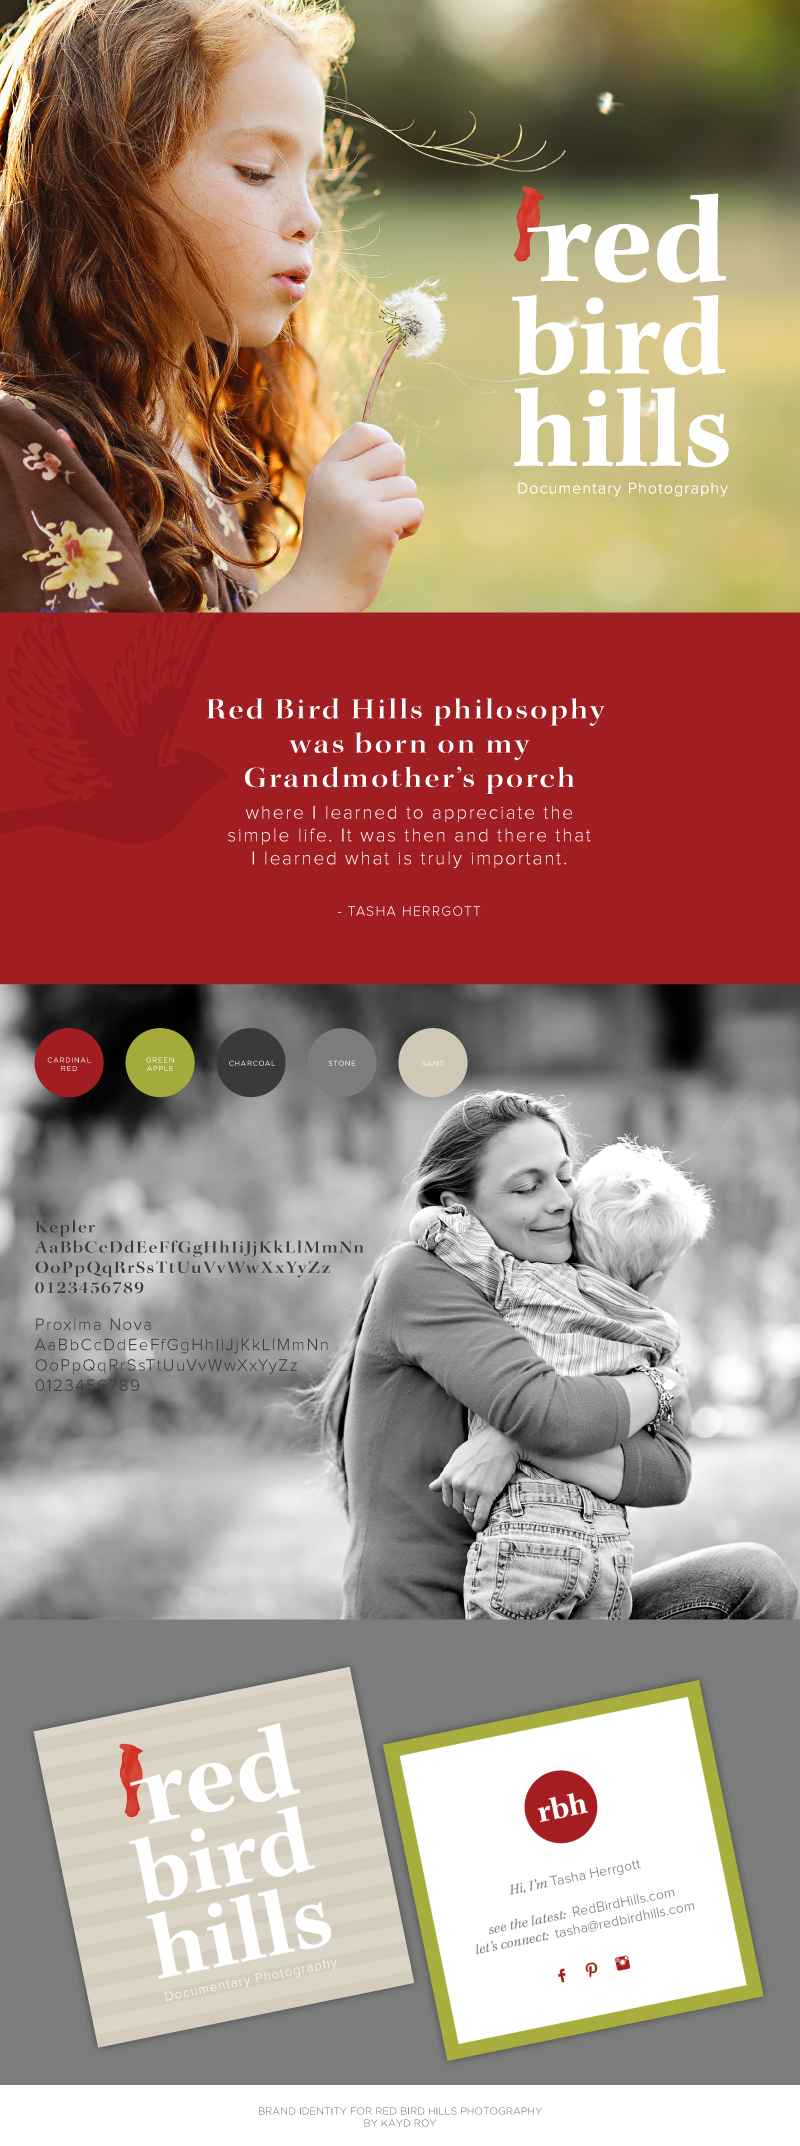 Branding for Red Bird Hills Photography by Kayd Roy